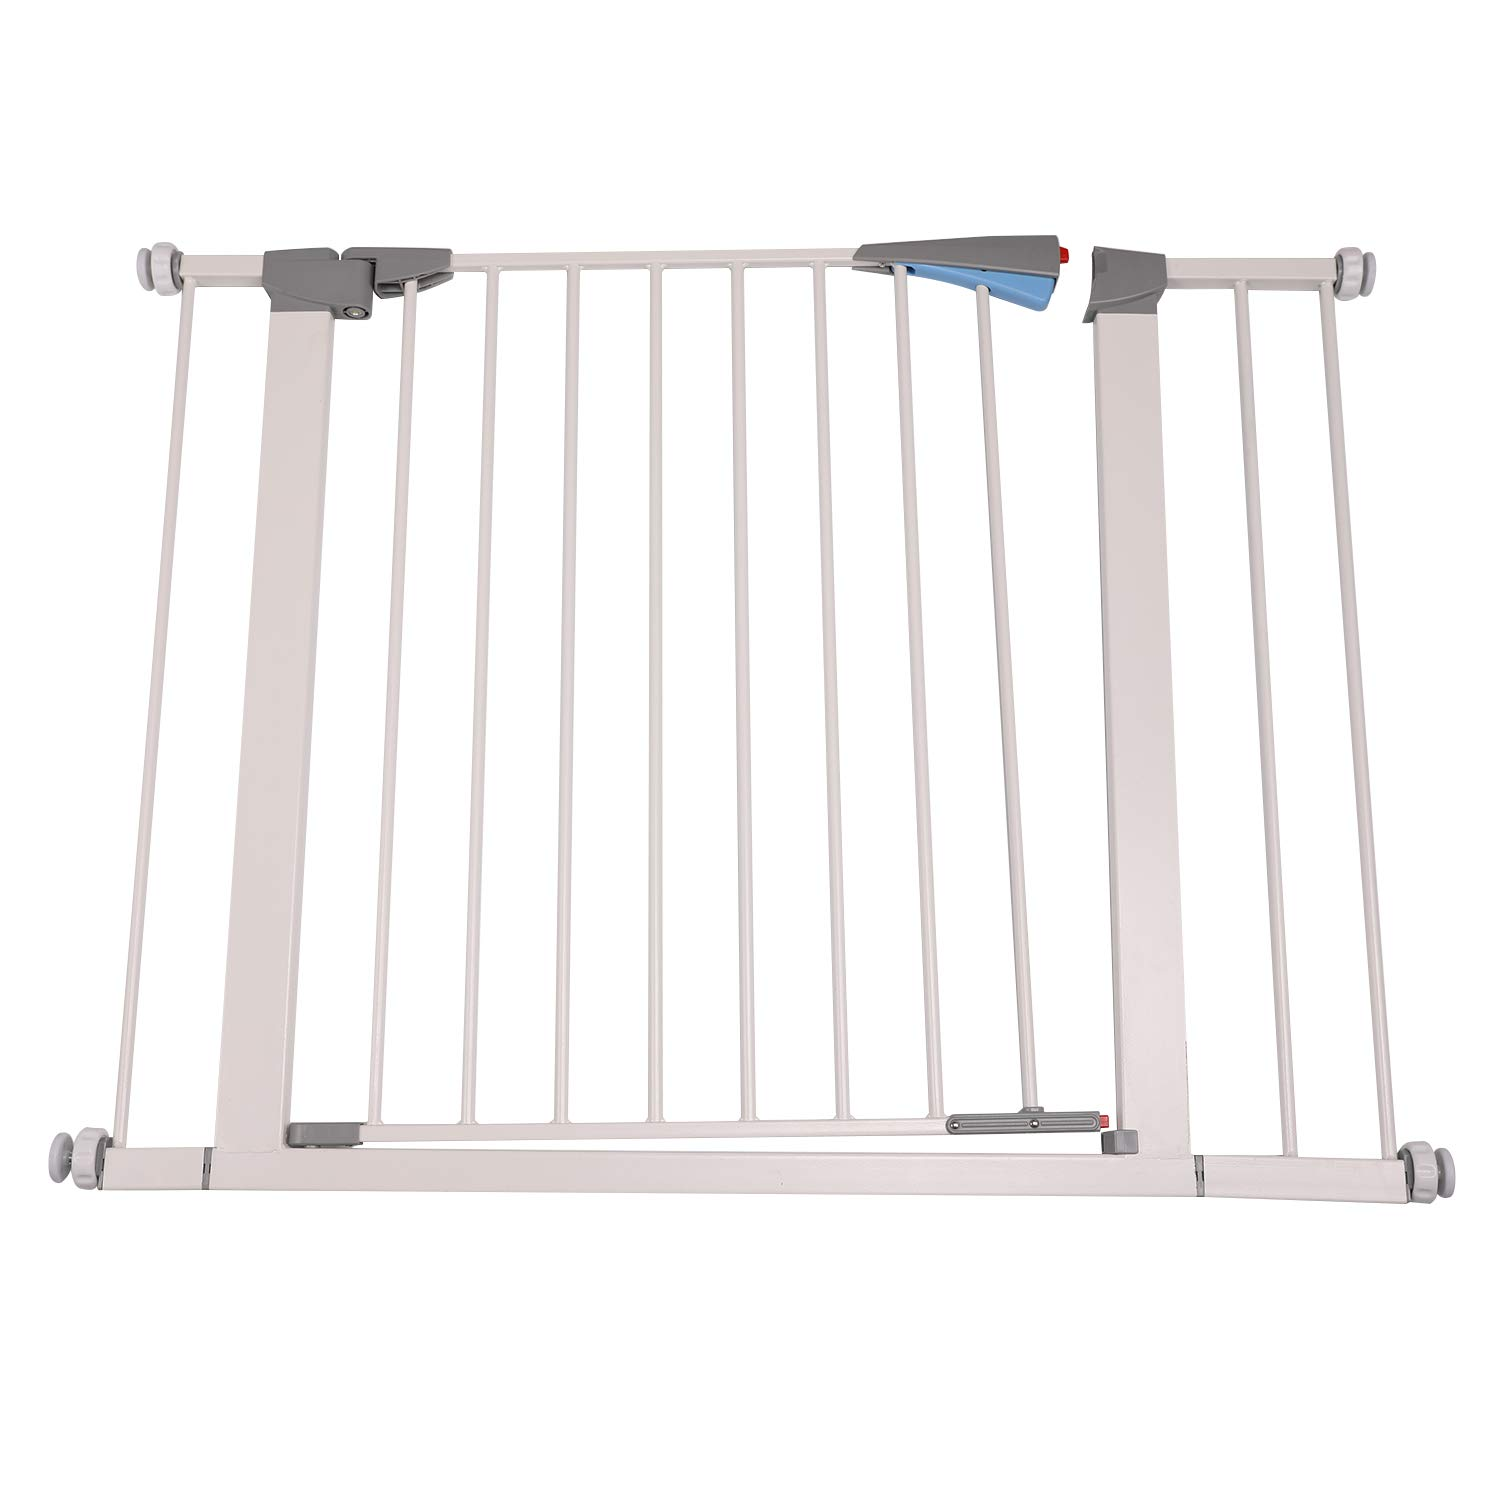 Walnest 28 x 30 Wide Indoor Safety Gates Metal Baby Gate Decorative Heavy Duty Ideal for Portico, Doorways or Between Rooms White-Add an Additional 5.5 to the Width of the Gate for Extra Wide Space